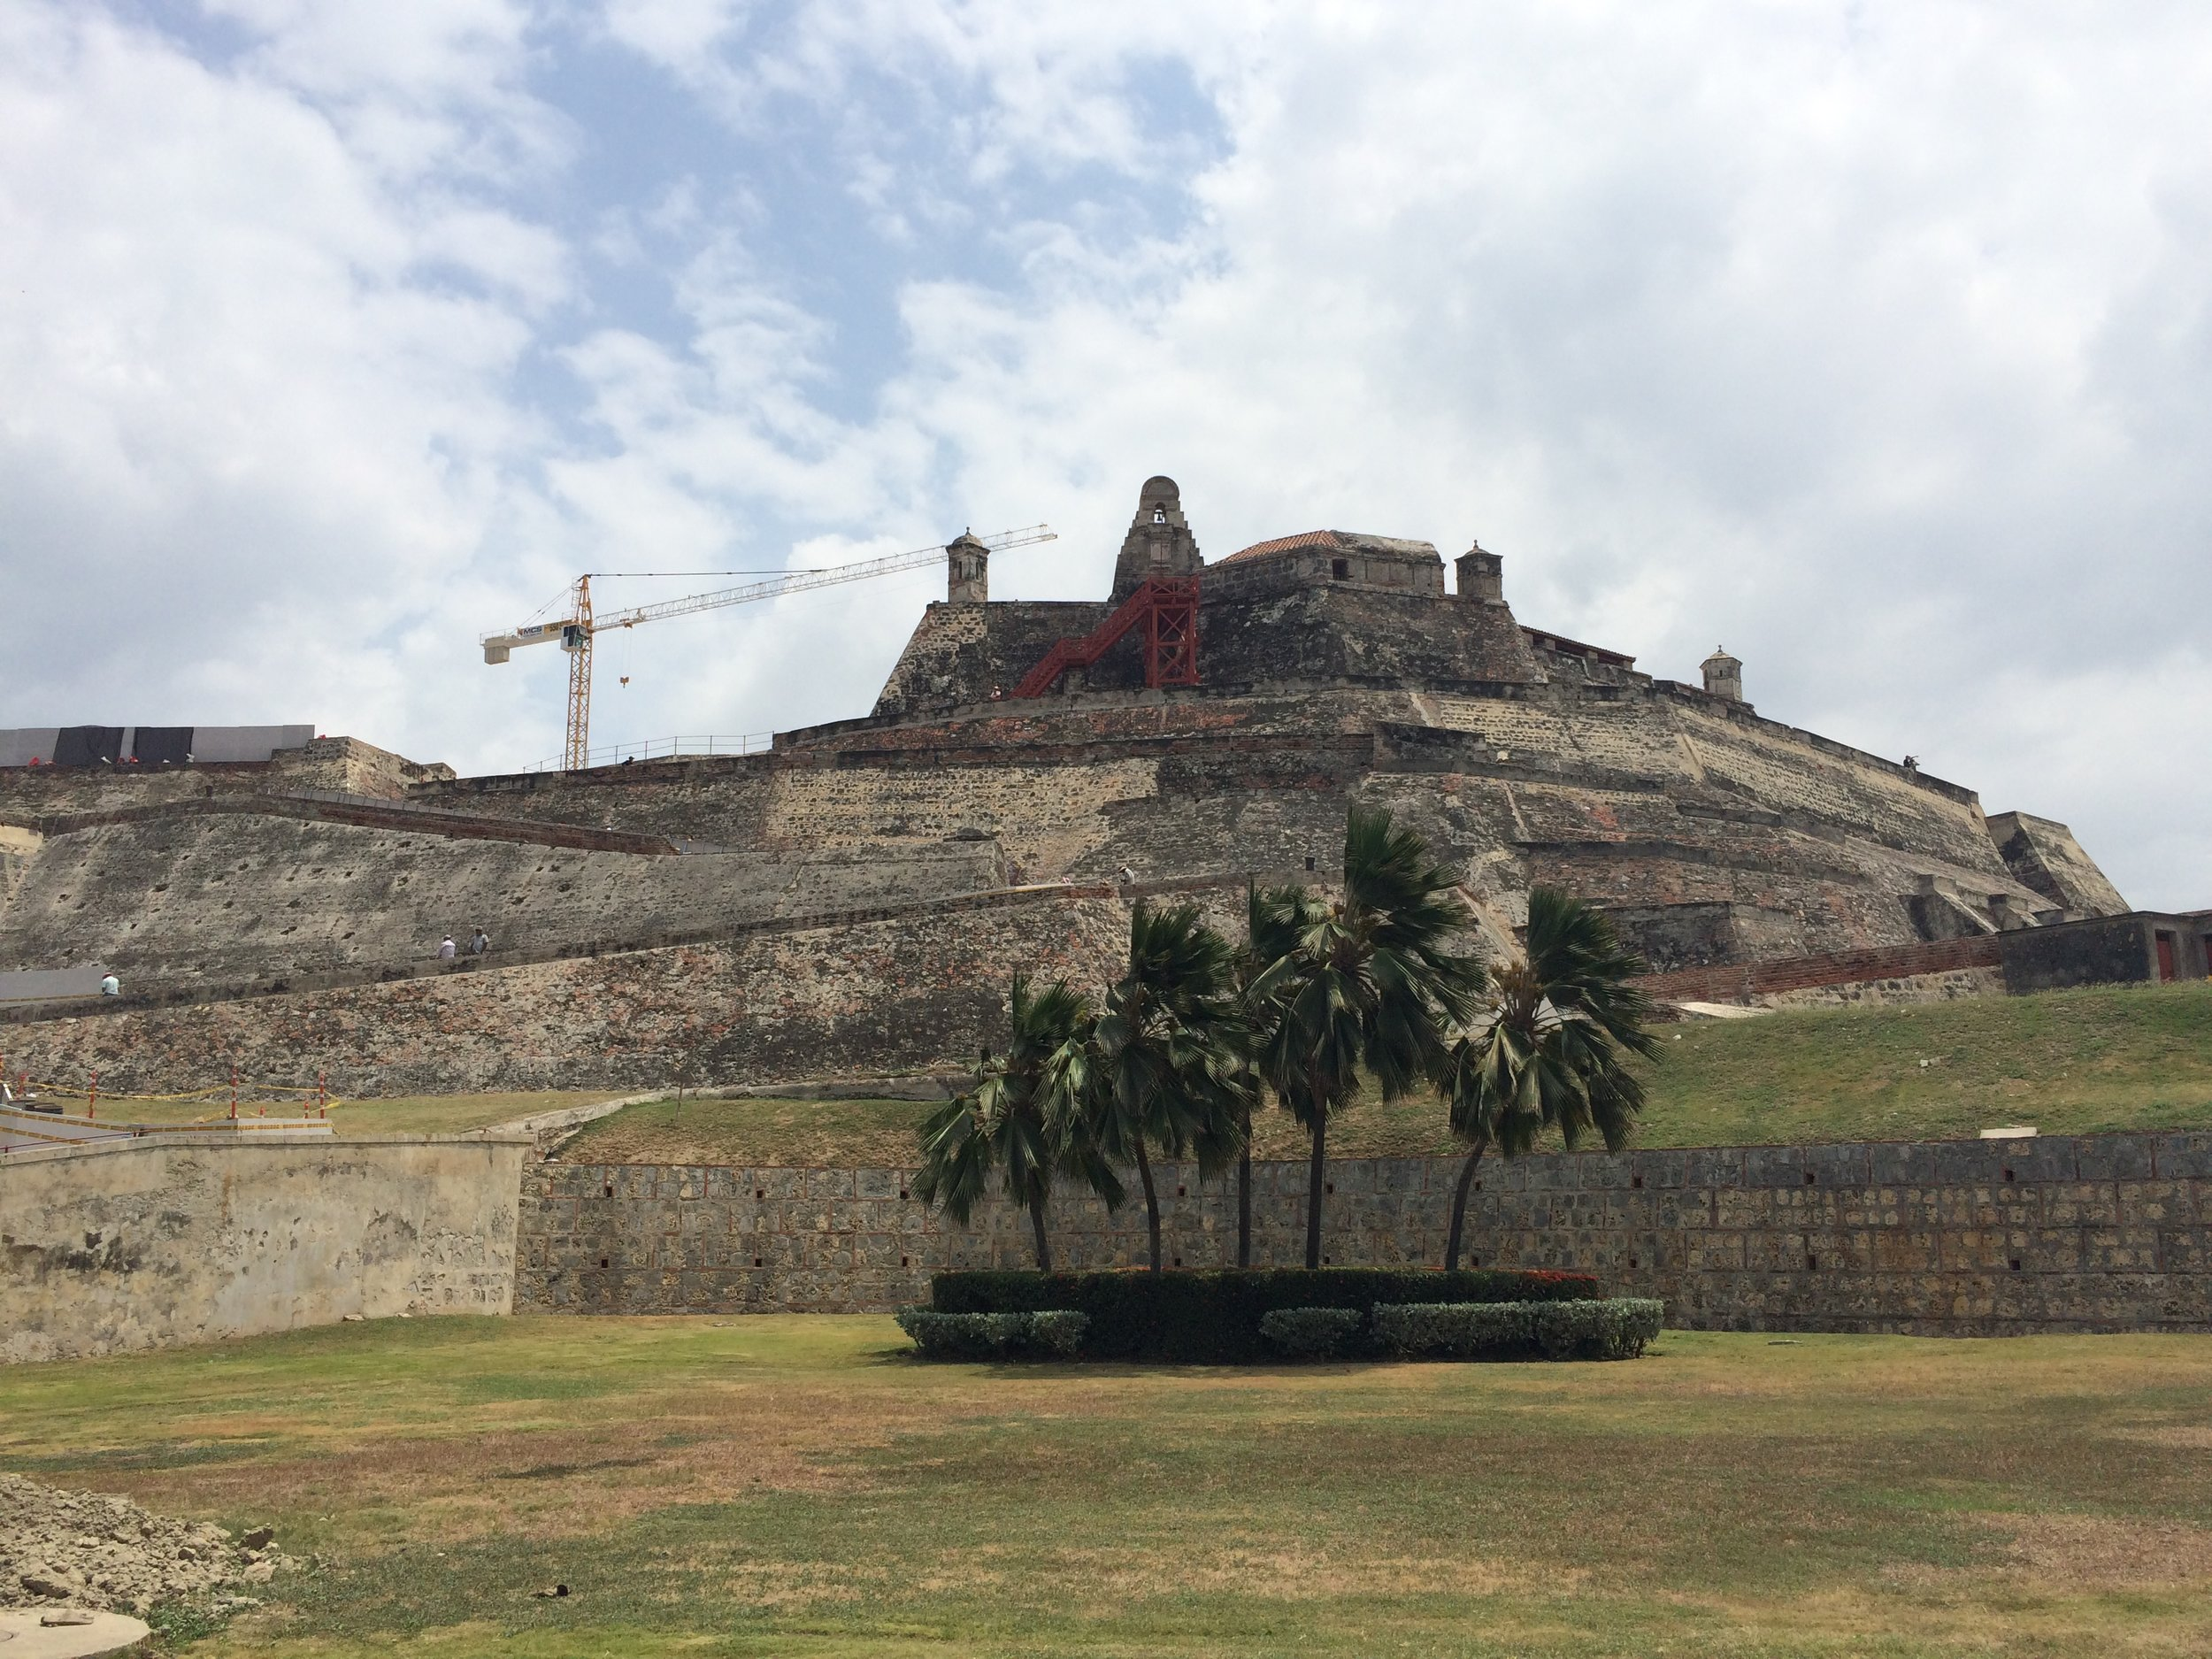 Cartagena's Fort High on a Hill, Colombia